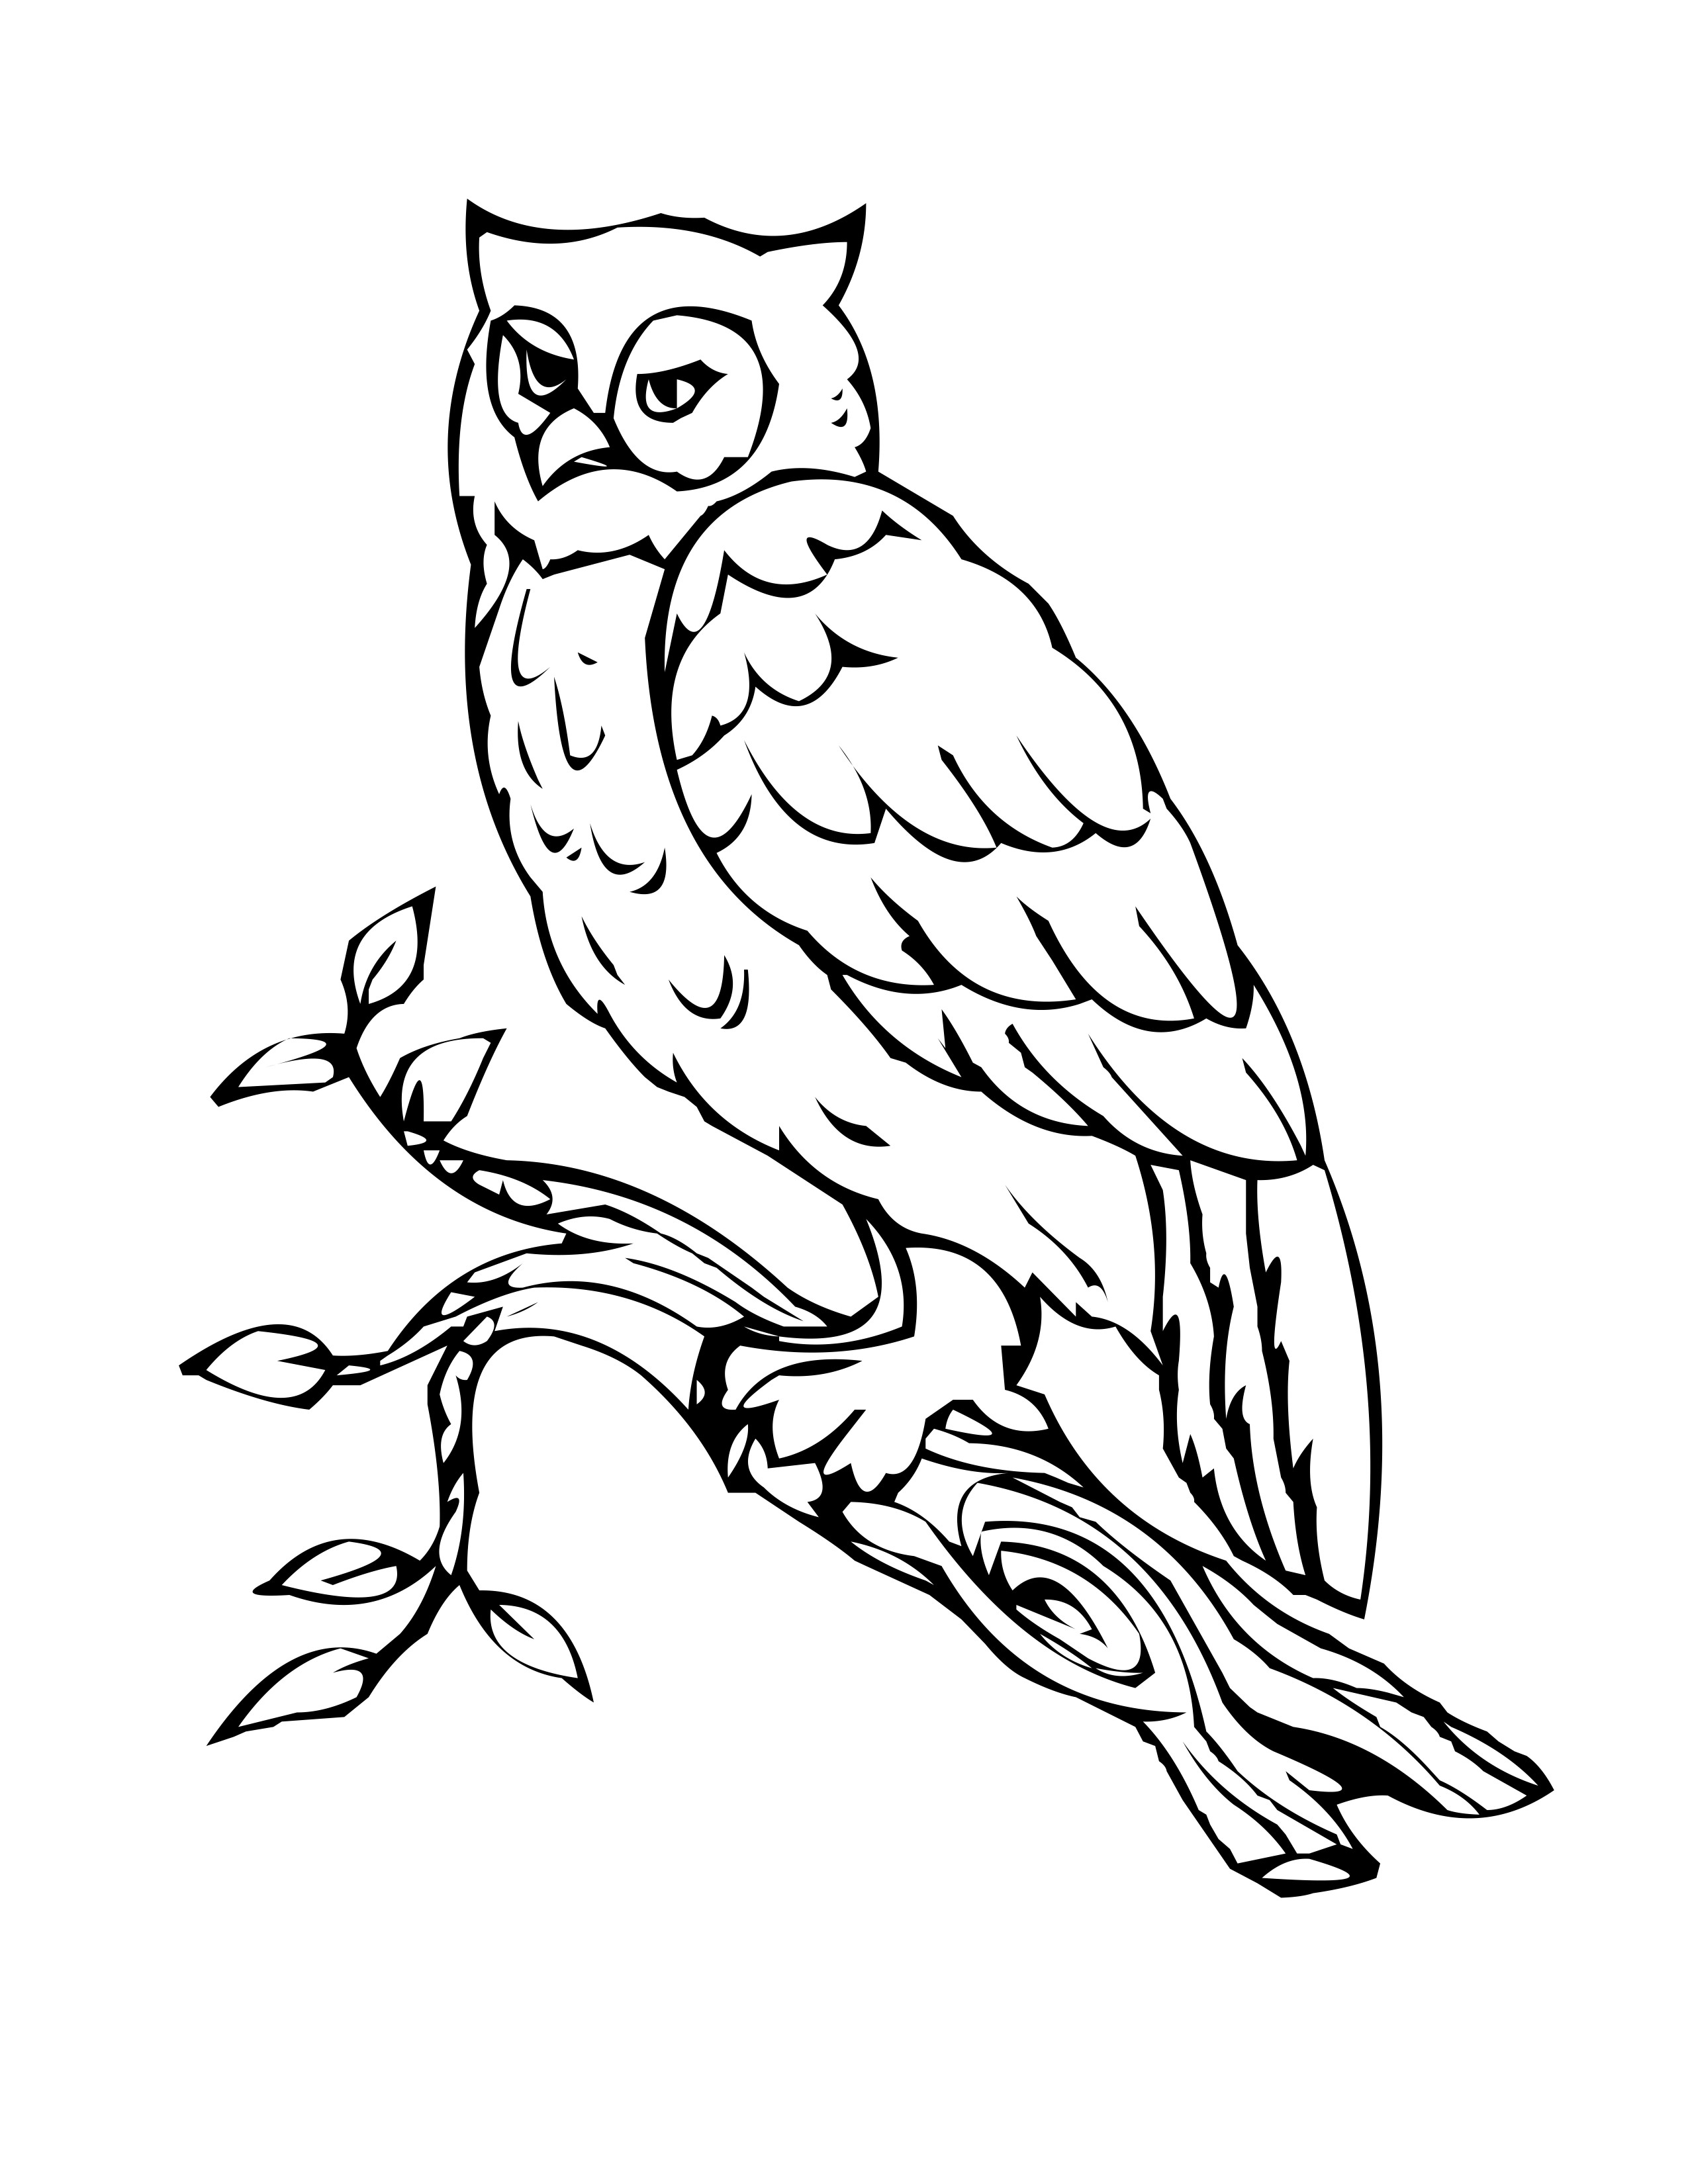 bird printable coloring pages cute bird coloring page woo jr kids activities bird pages printable coloring